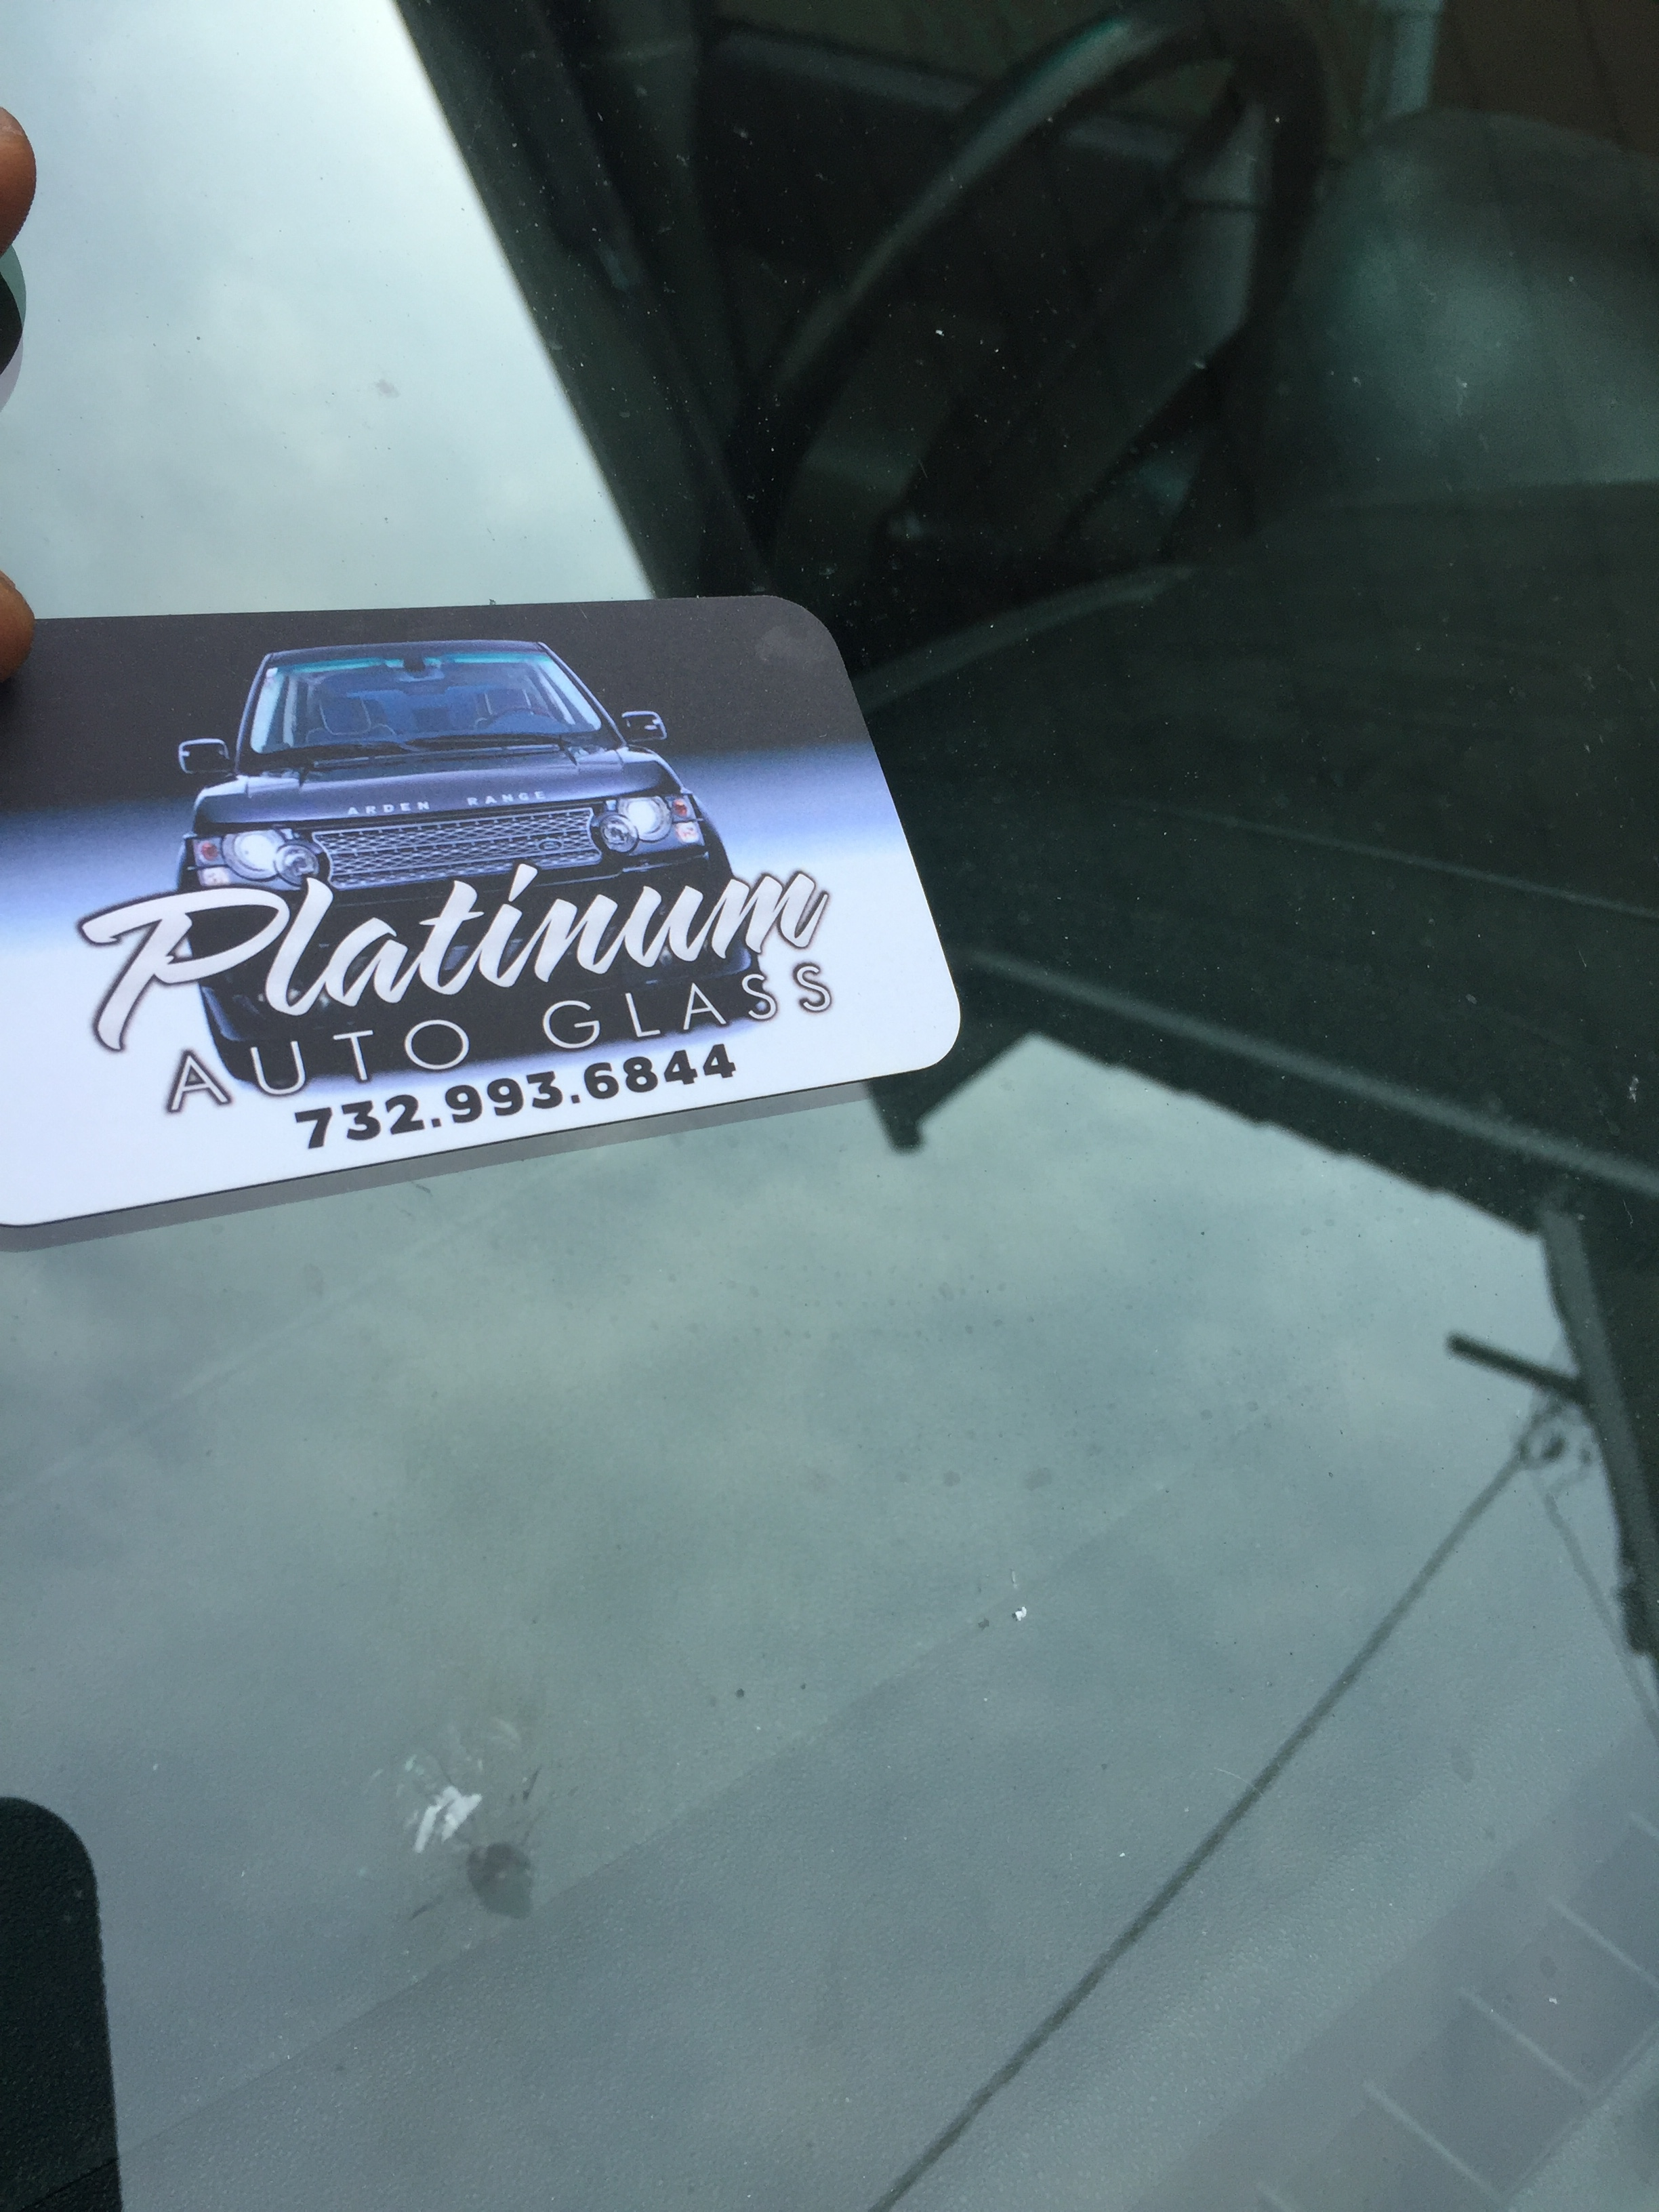 Windshield Chip Repair done onsite work or home@platinumautoglassnj